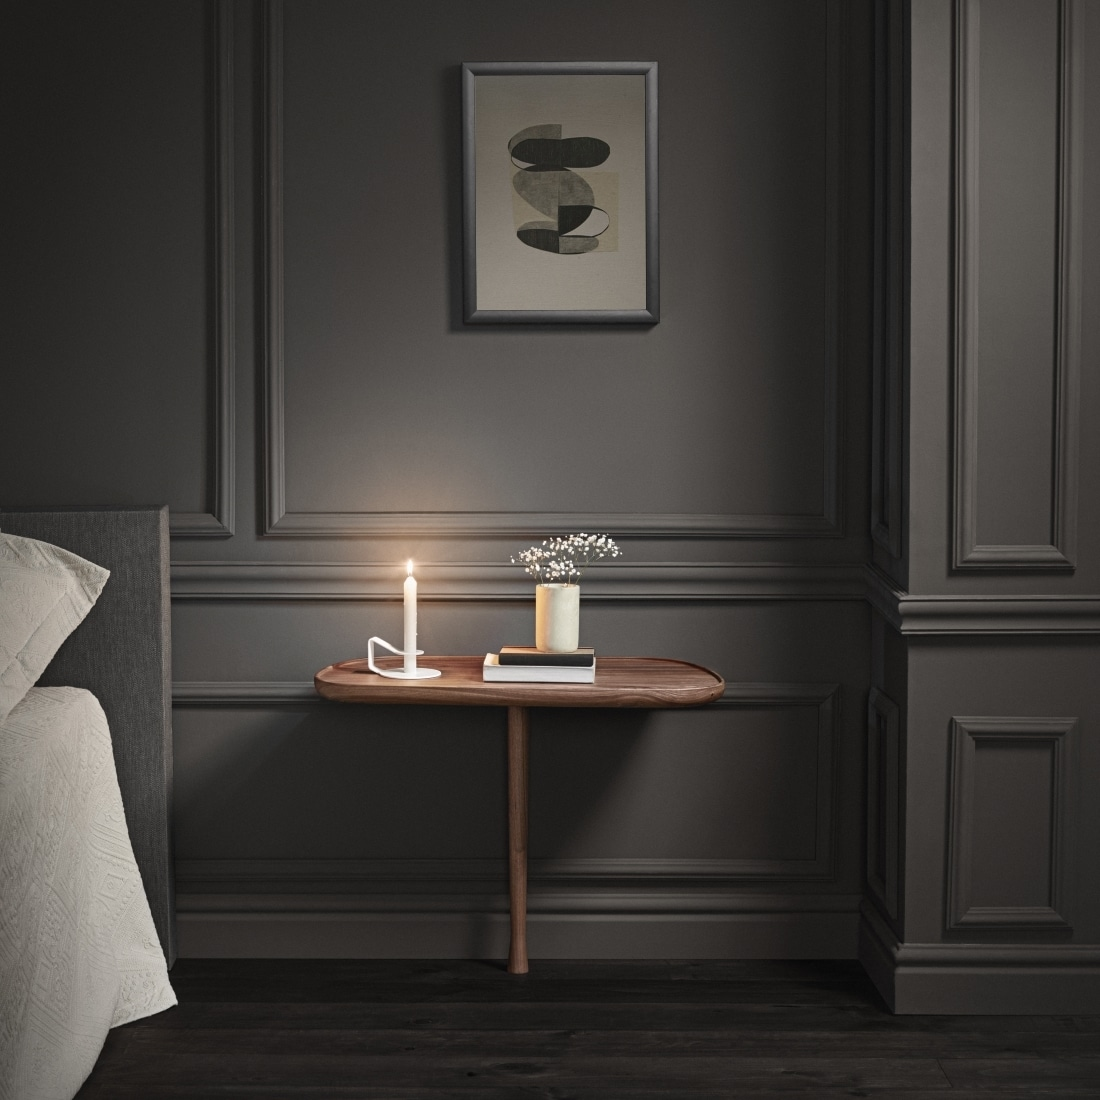 table de nuit mesita nomon mobilier design lyon im lyon. Black Bedroom Furniture Sets. Home Design Ideas